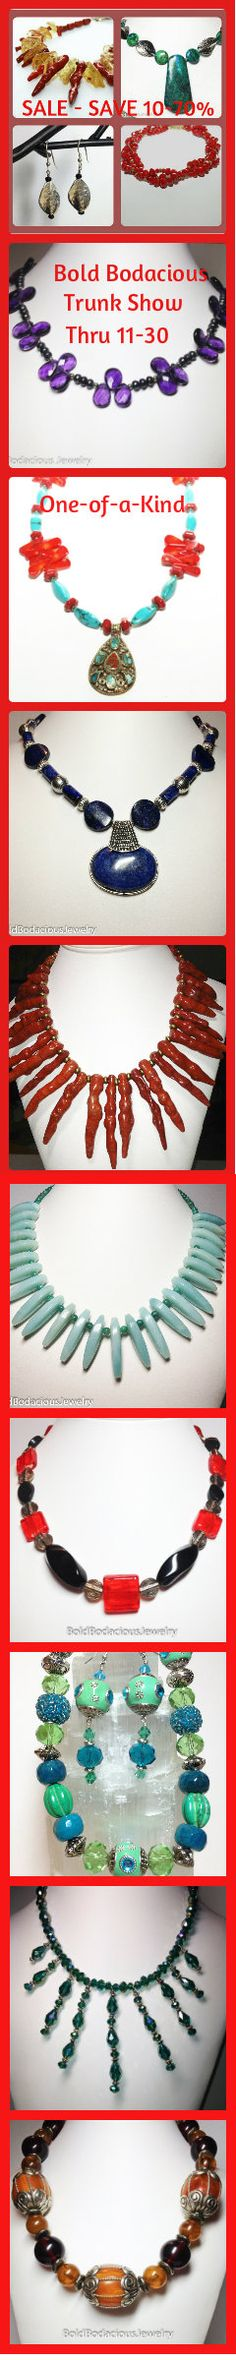 Bold Bodacious Jewelry Sale Online Trunk Show - 10-70% off over 200 one-of-a-kind items